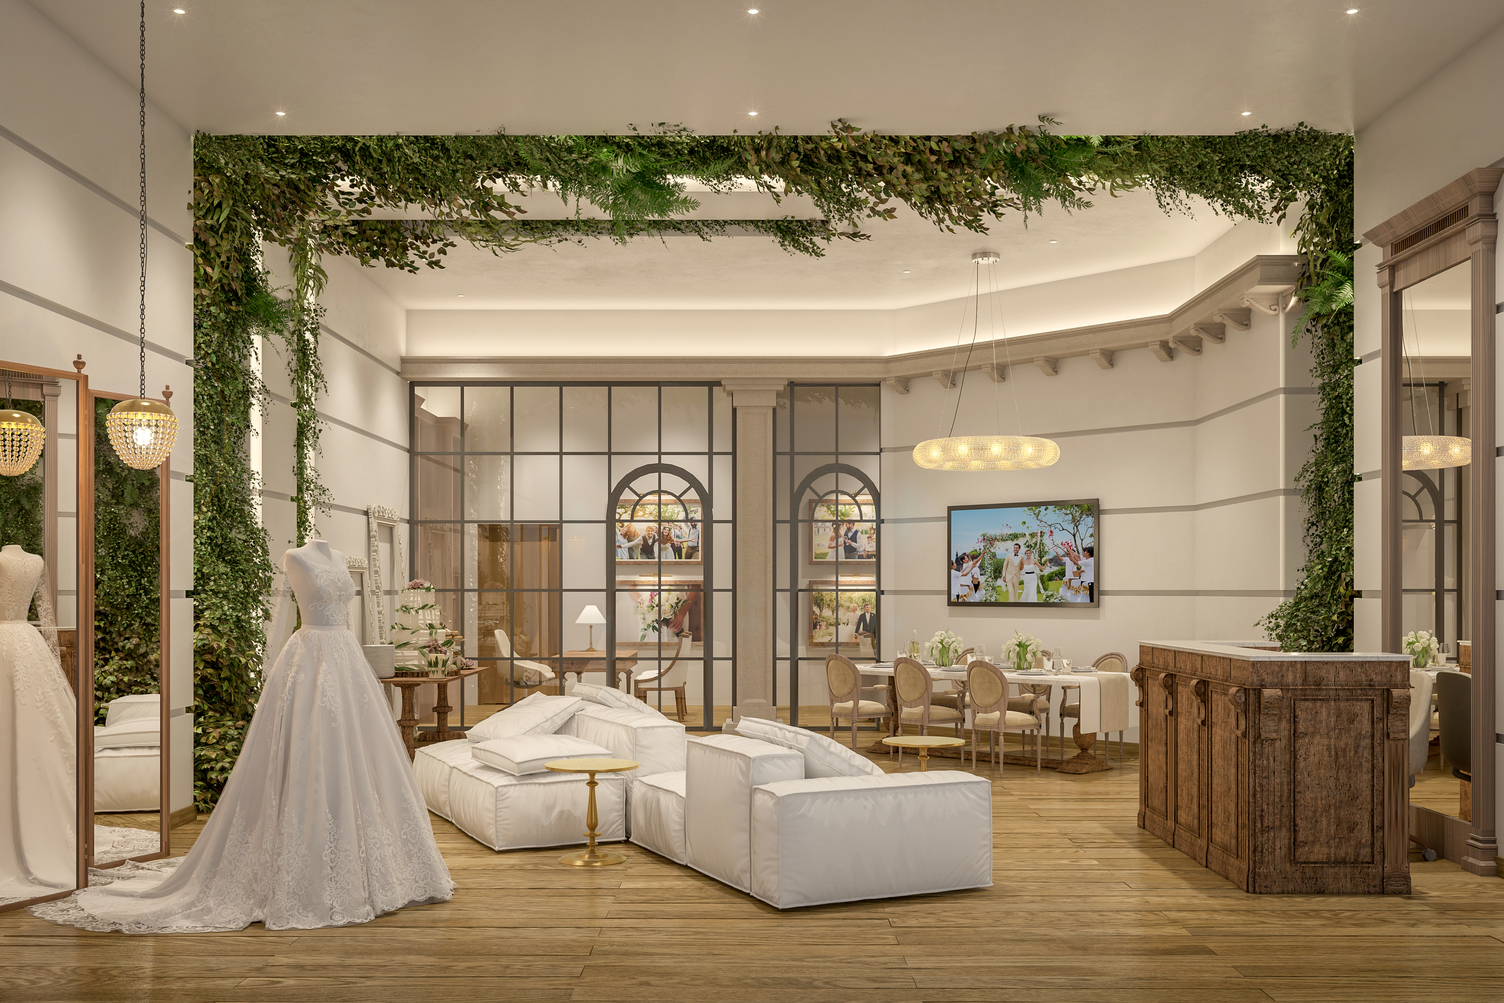 Hyatt Ziva/Zilara Wedding Sales Office